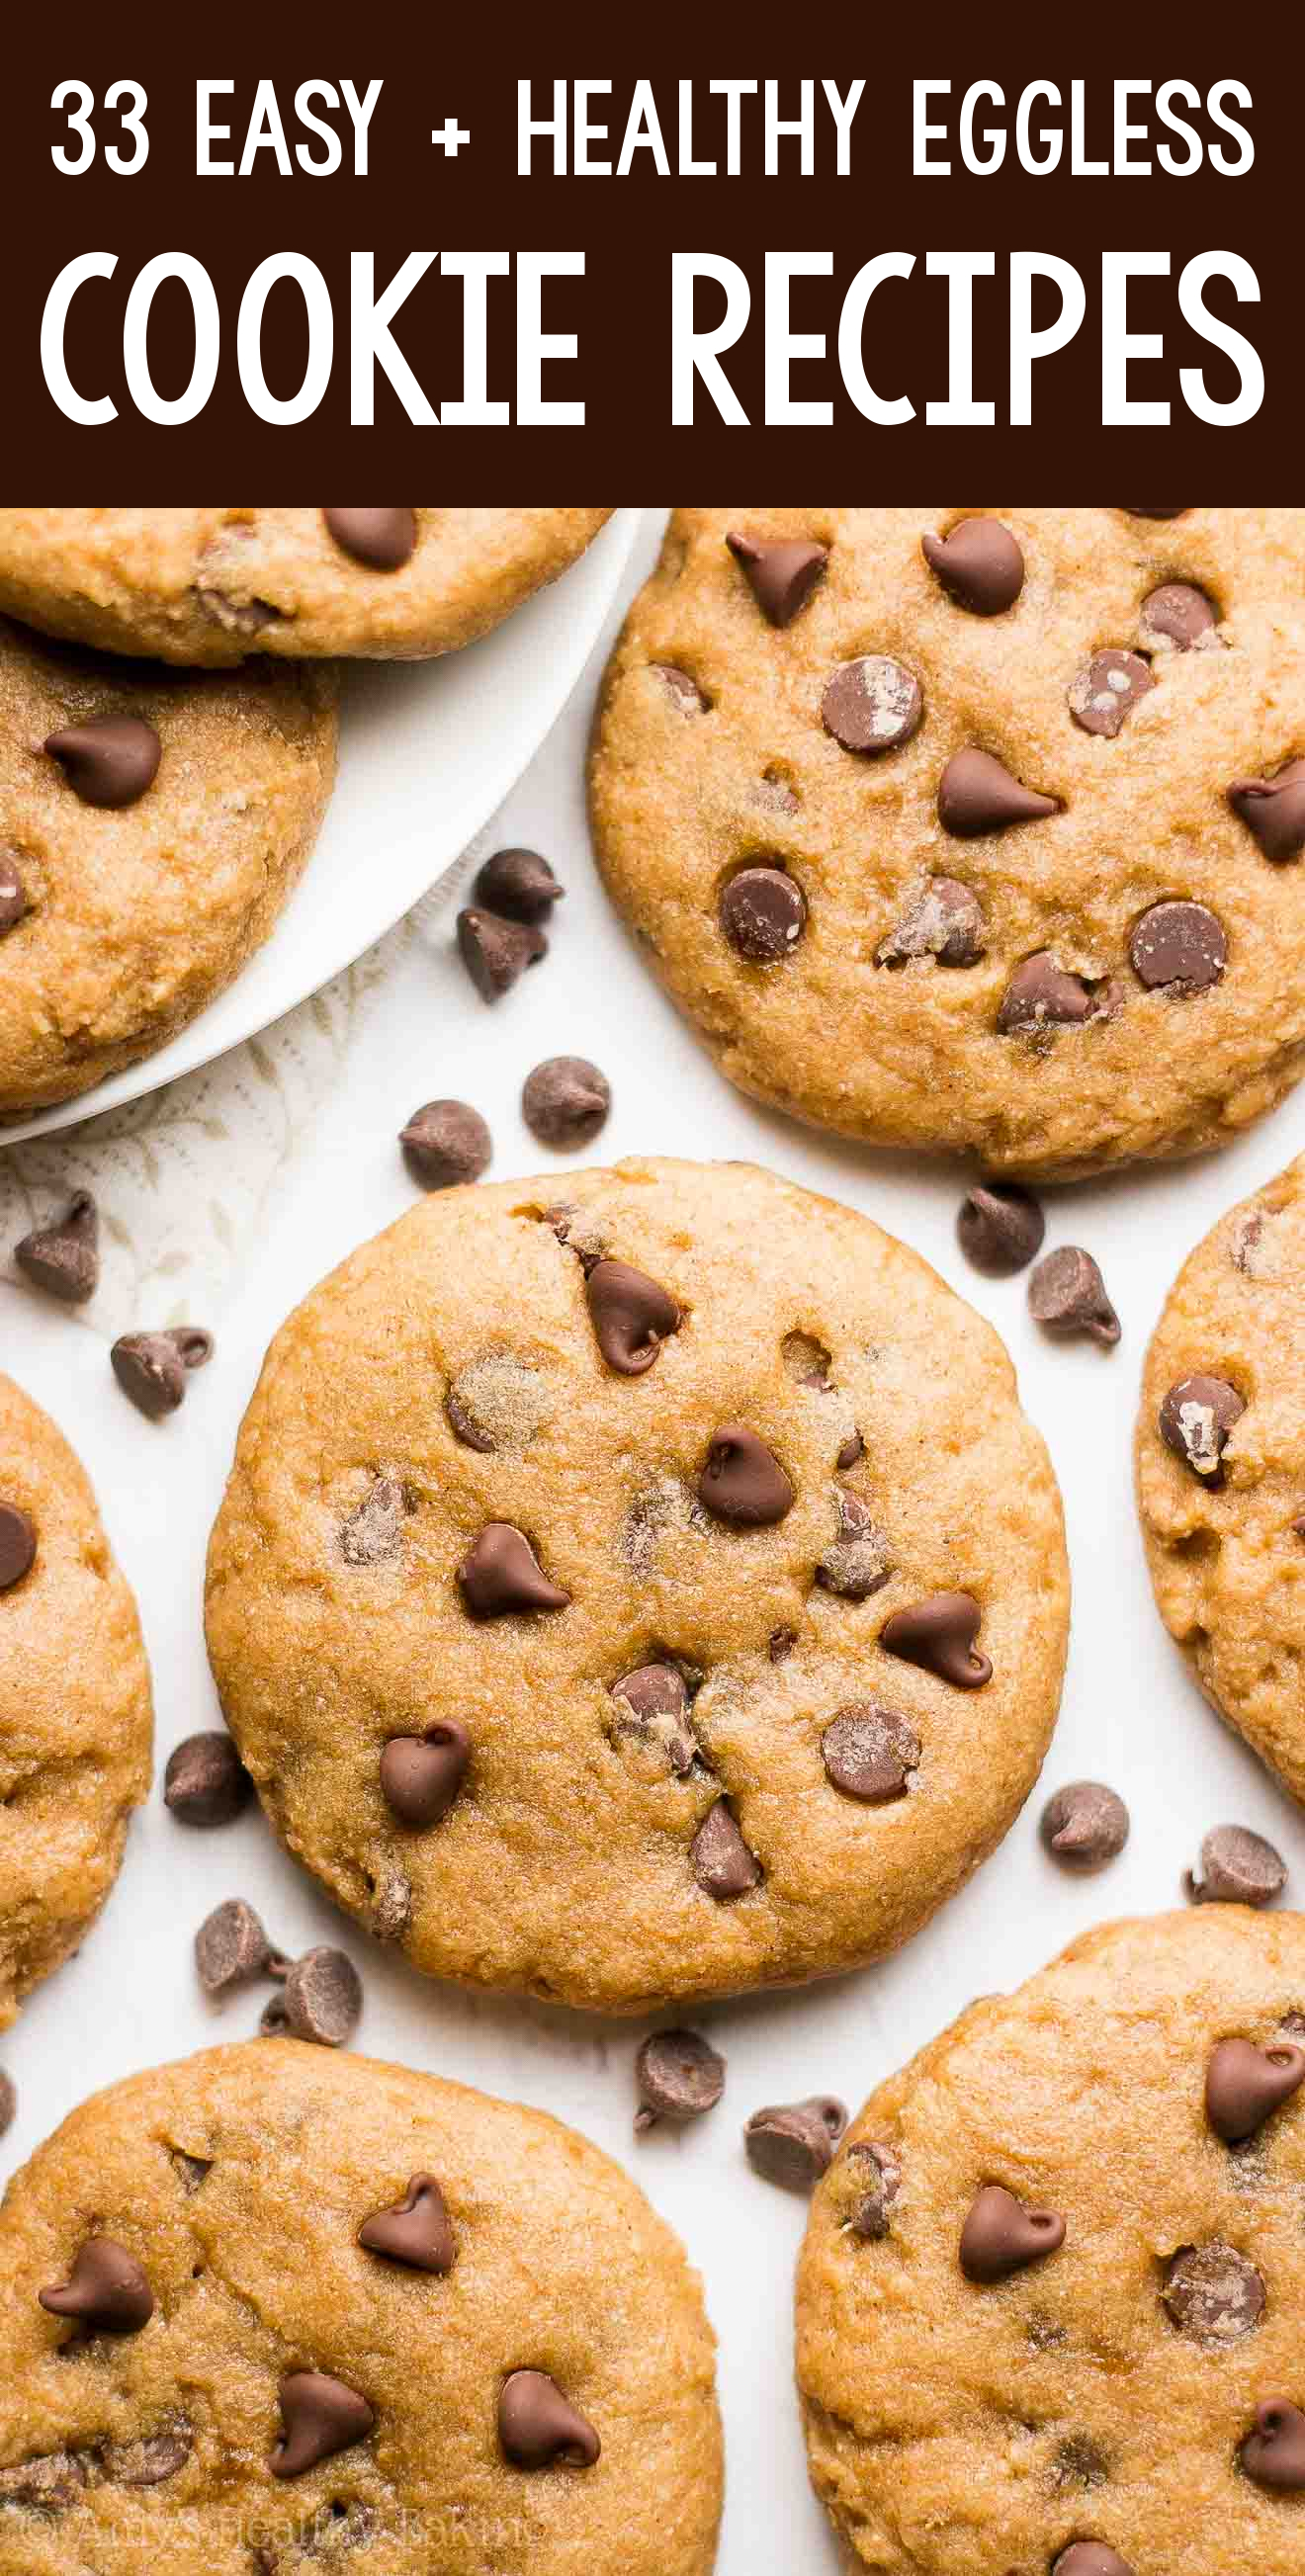 the BEST EVER healthy dairy-free eggless vegan banana chocolate chip cookies